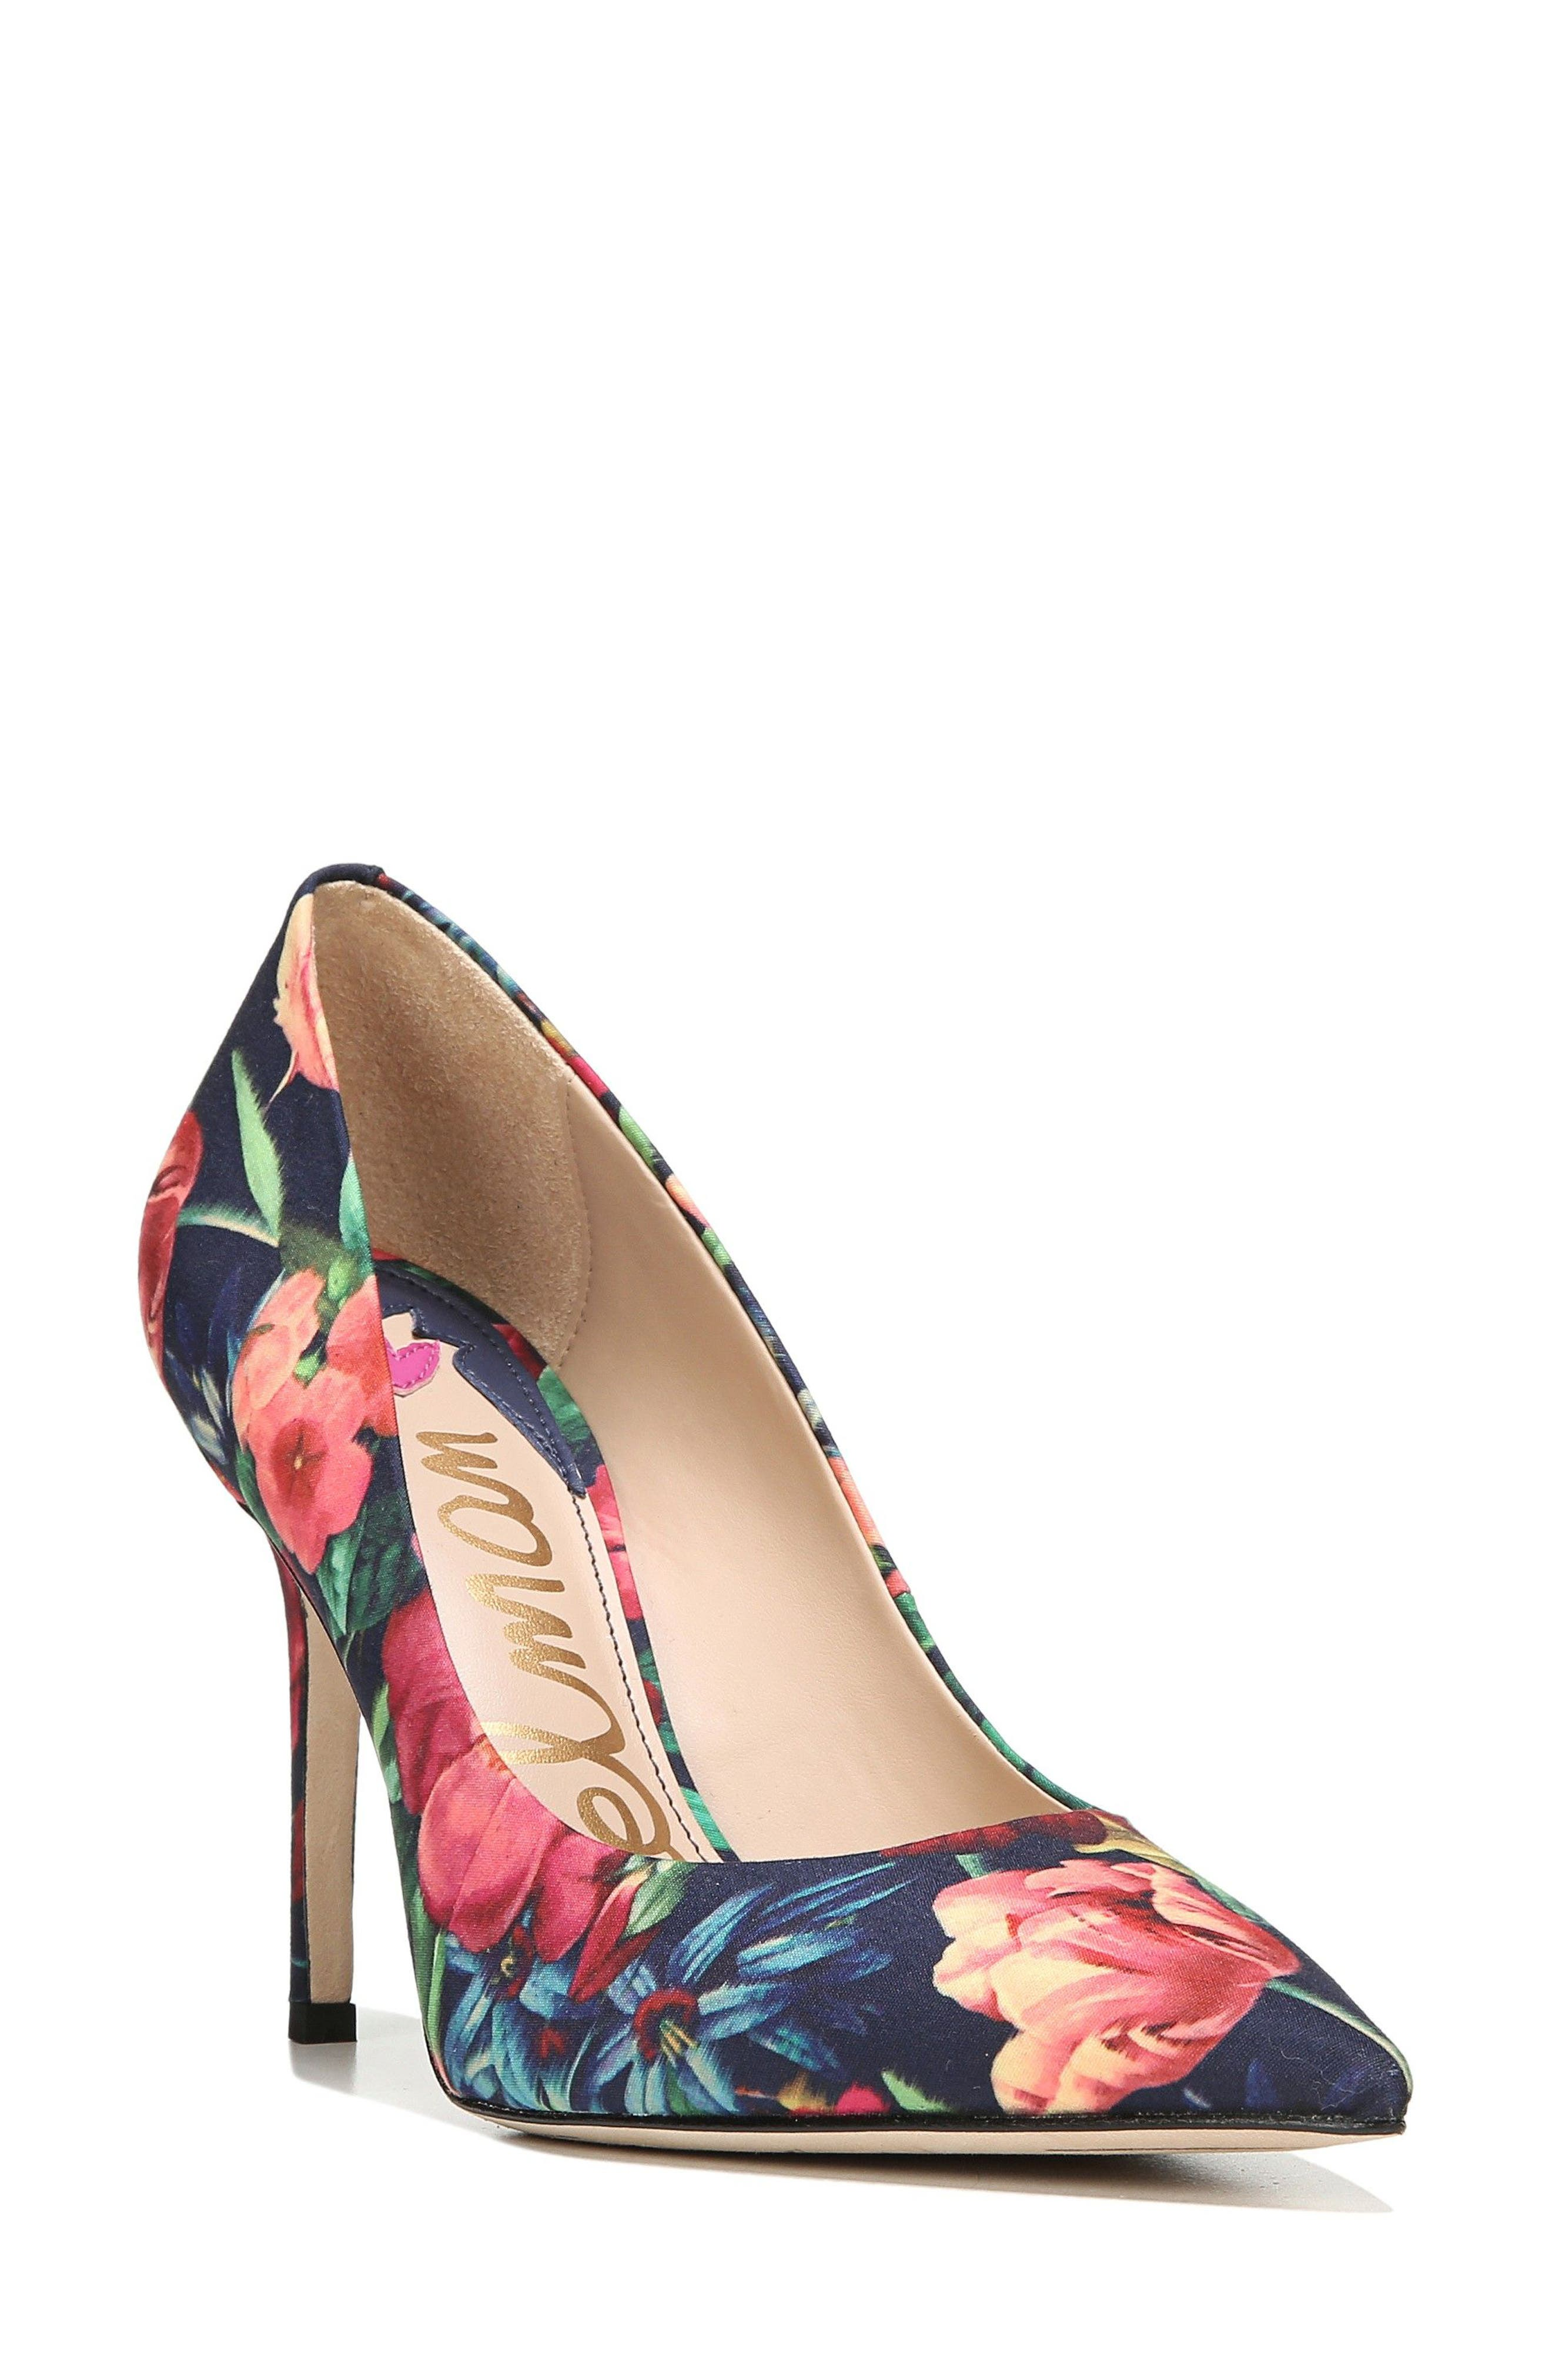 Hazel Pump,                             Main thumbnail 1, color,                             Navy Floral Fabric